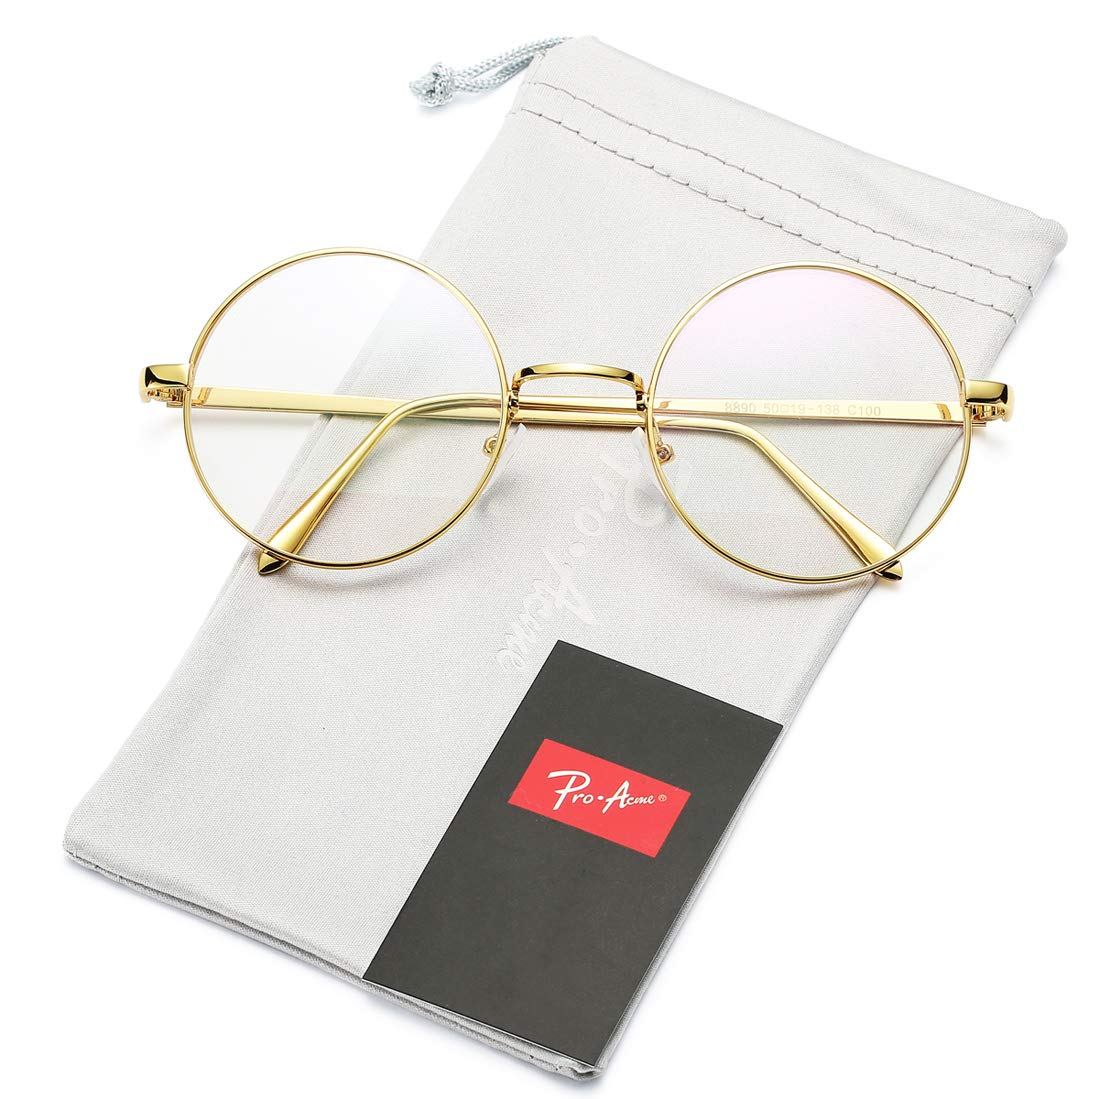 Pro Acme Retro Round Metal Frame Clear Lens Glasses Non-Prescription PA5866C